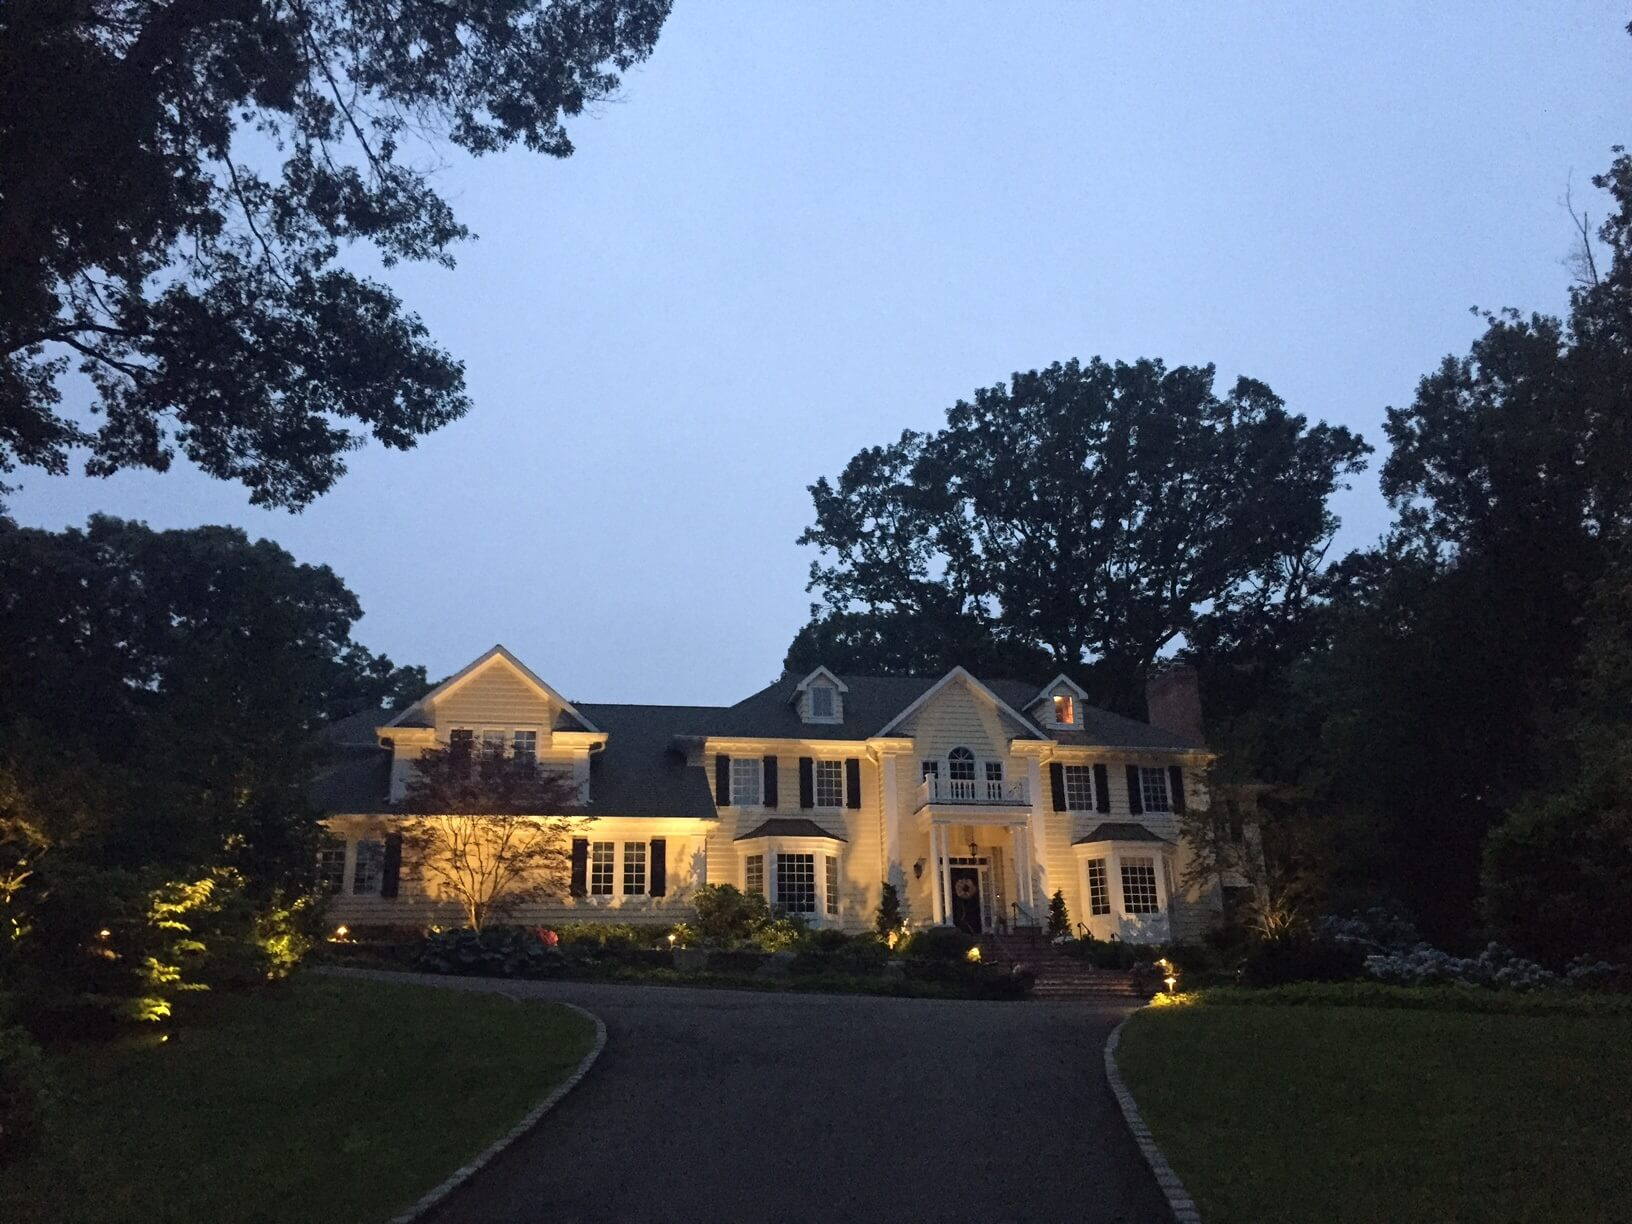 Outdoor lighting on home in the Hamptons, NY